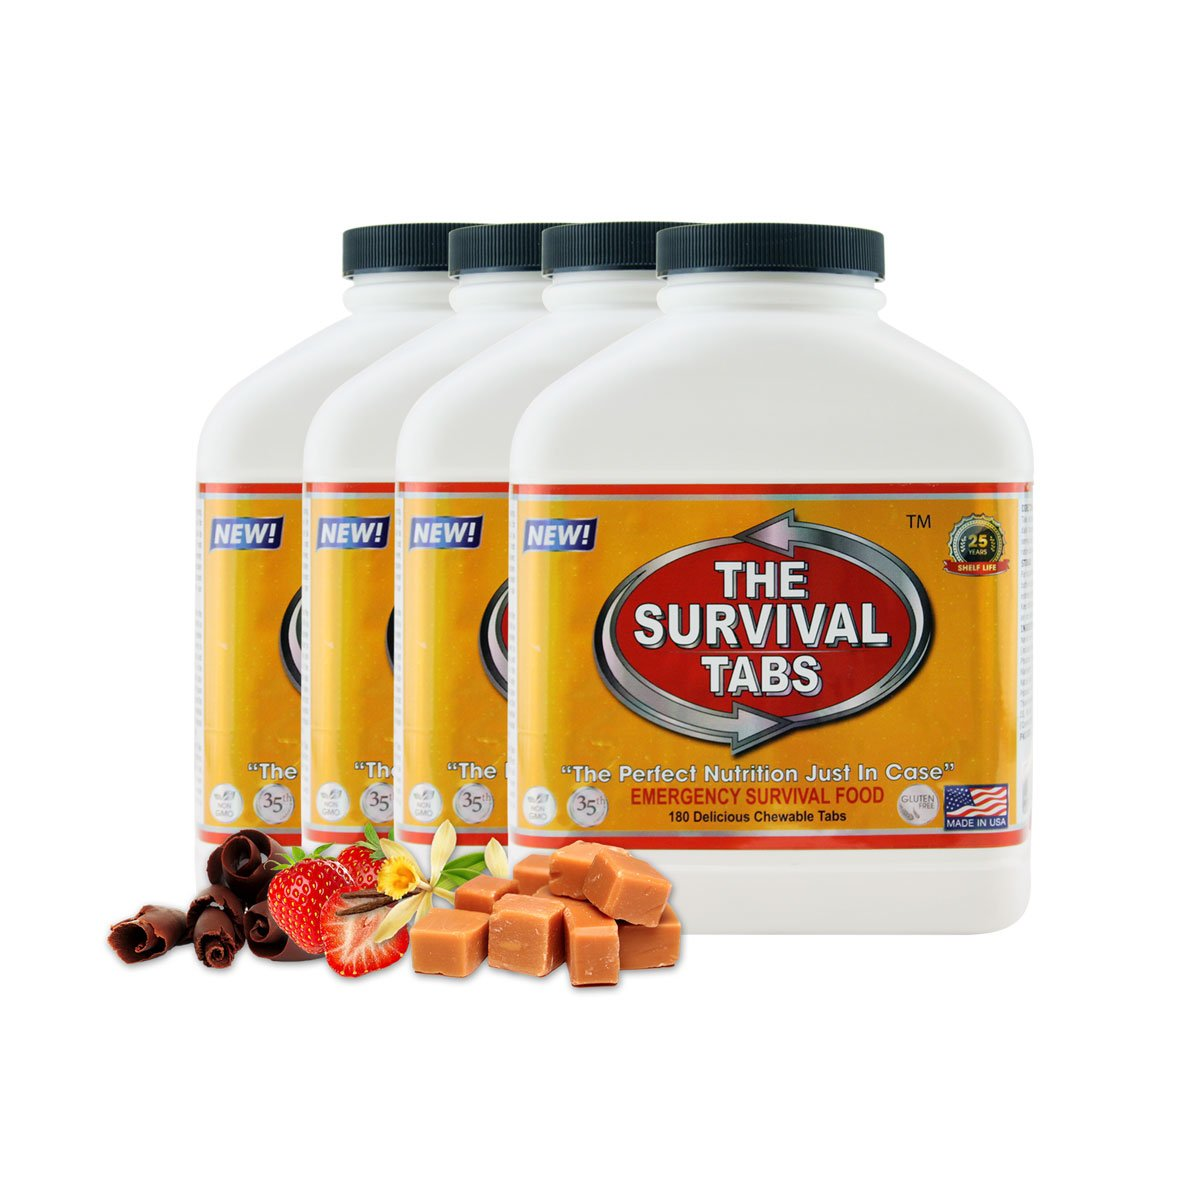 Survival Tabs 60-Day 720 Tabs Emergency Food Ration Survival MREs Food Replacement for Outdoor Activities Disaster Preparedness Gluten Free and Non-GMO 25 Years Shelf Life Long Term - Mixed Flavor LOHAS FARMS